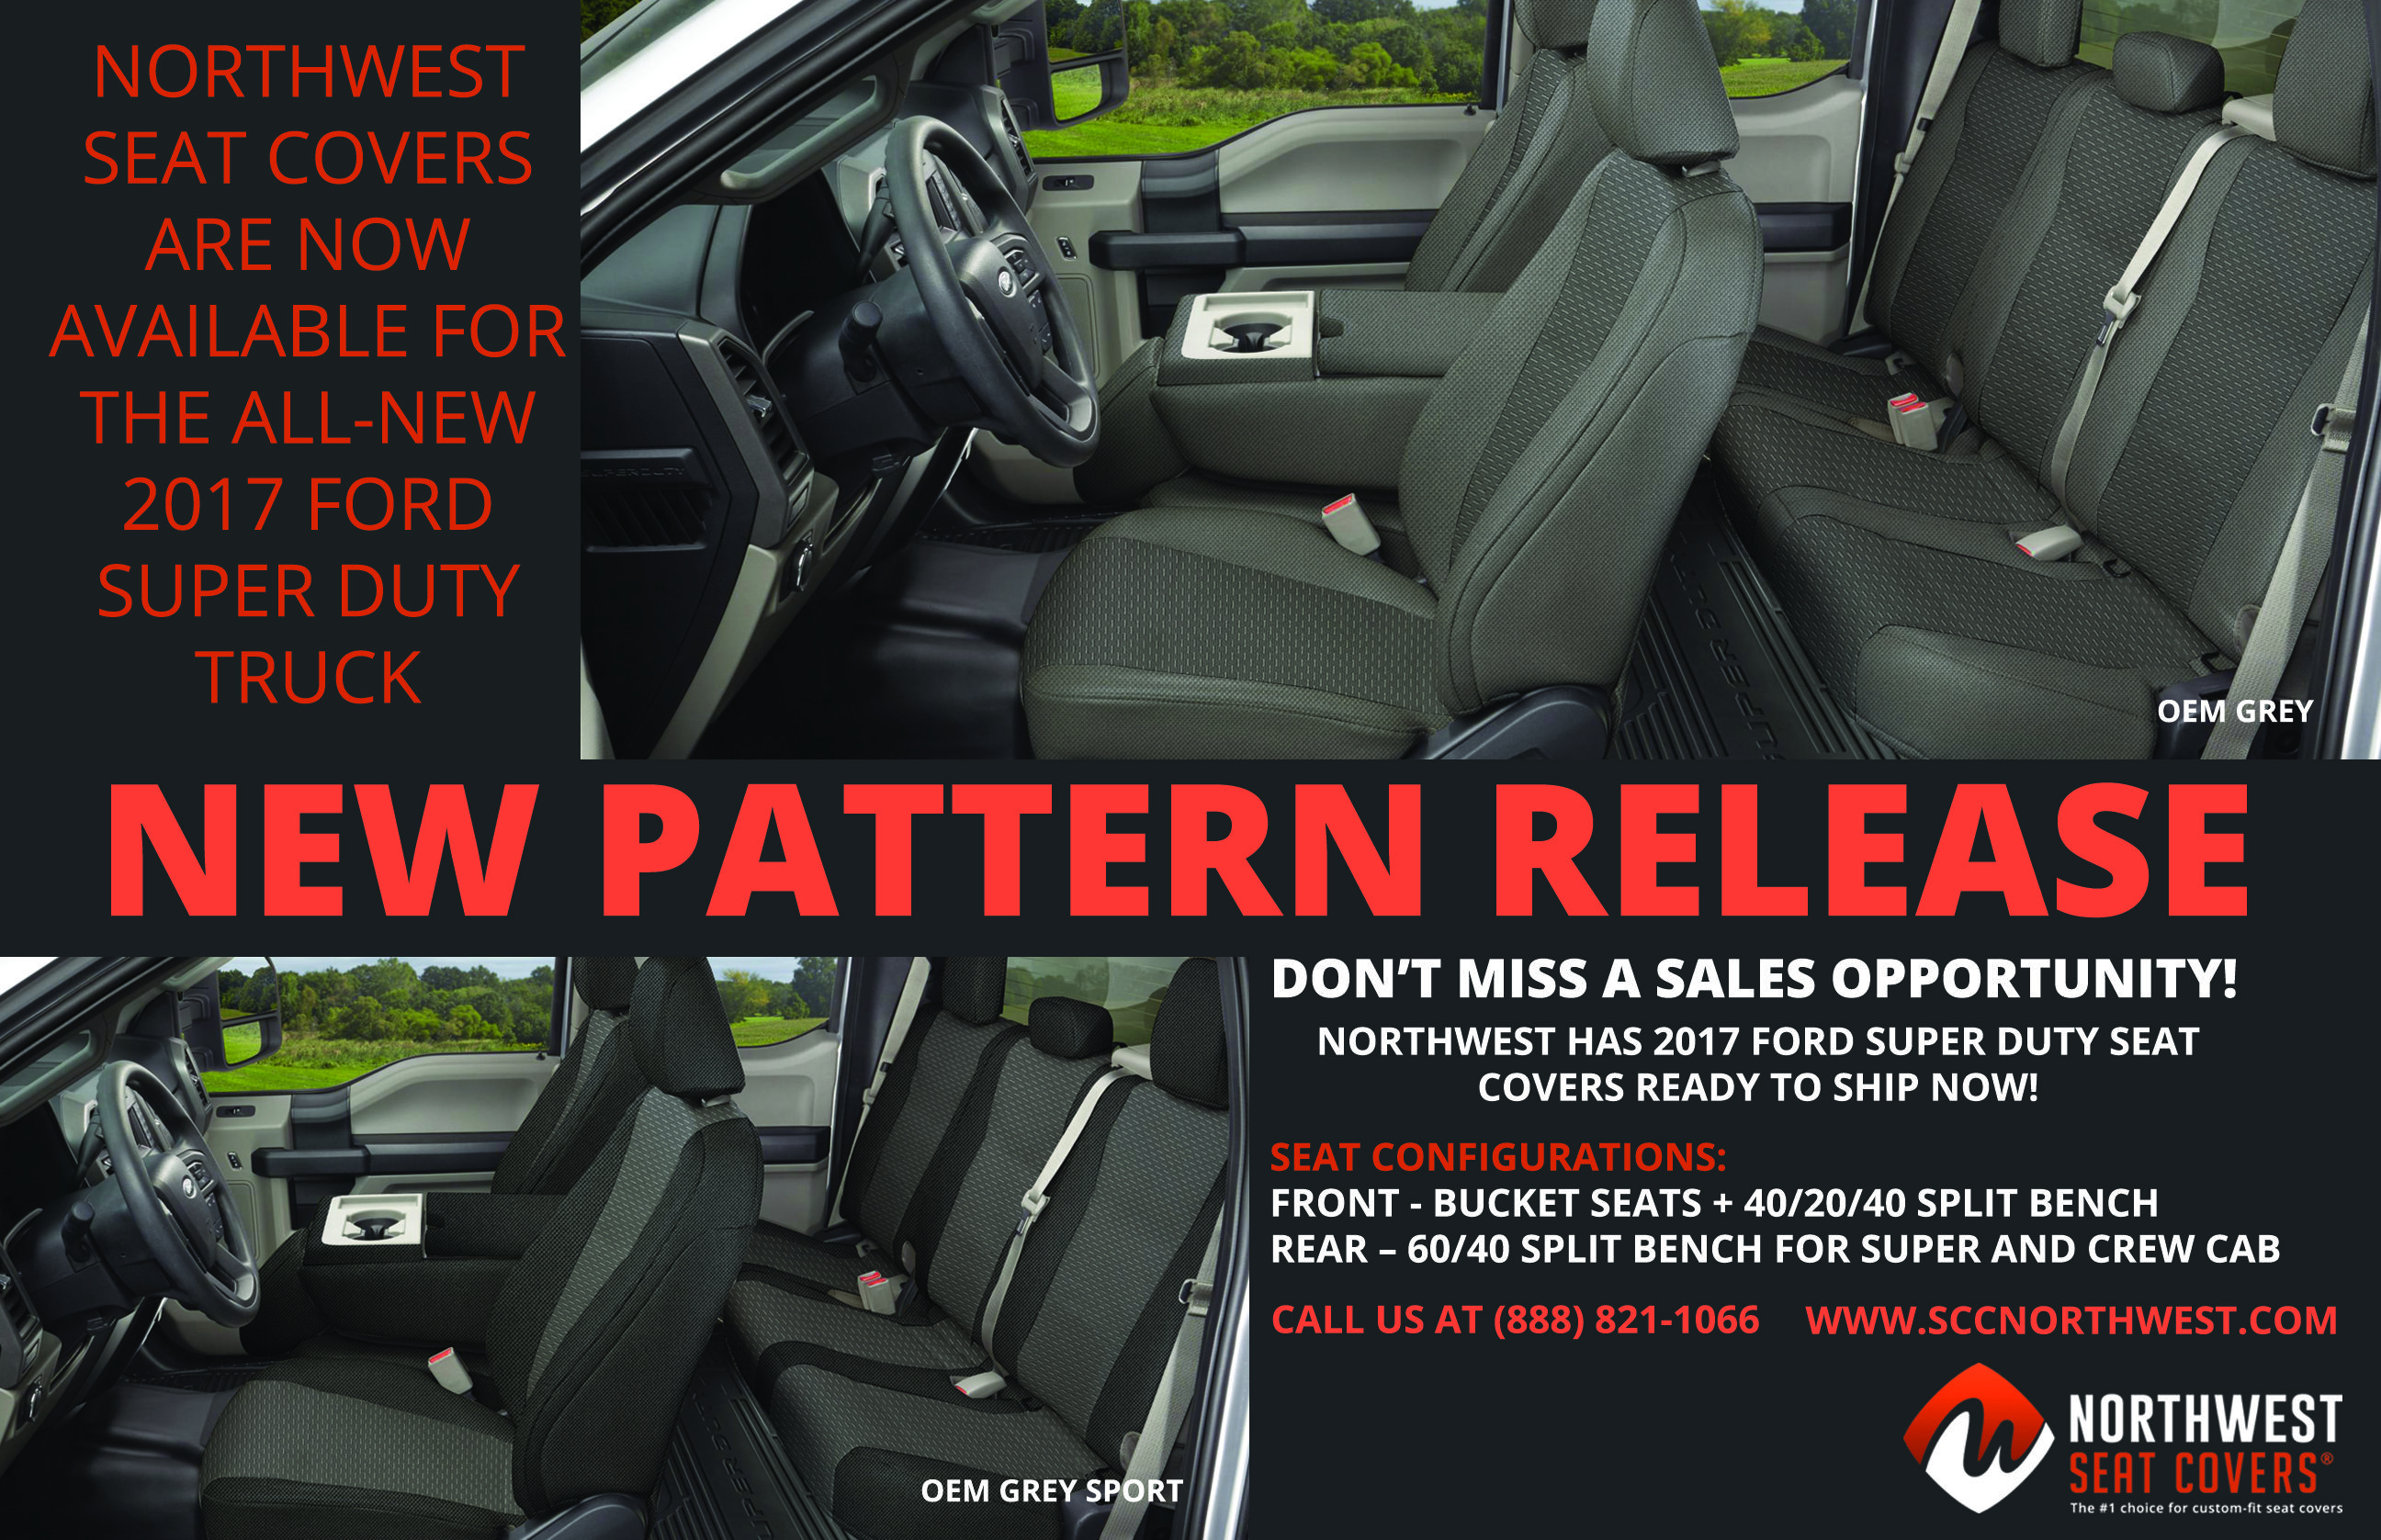 hight resolution of nw seat covers 2017 ford super duty